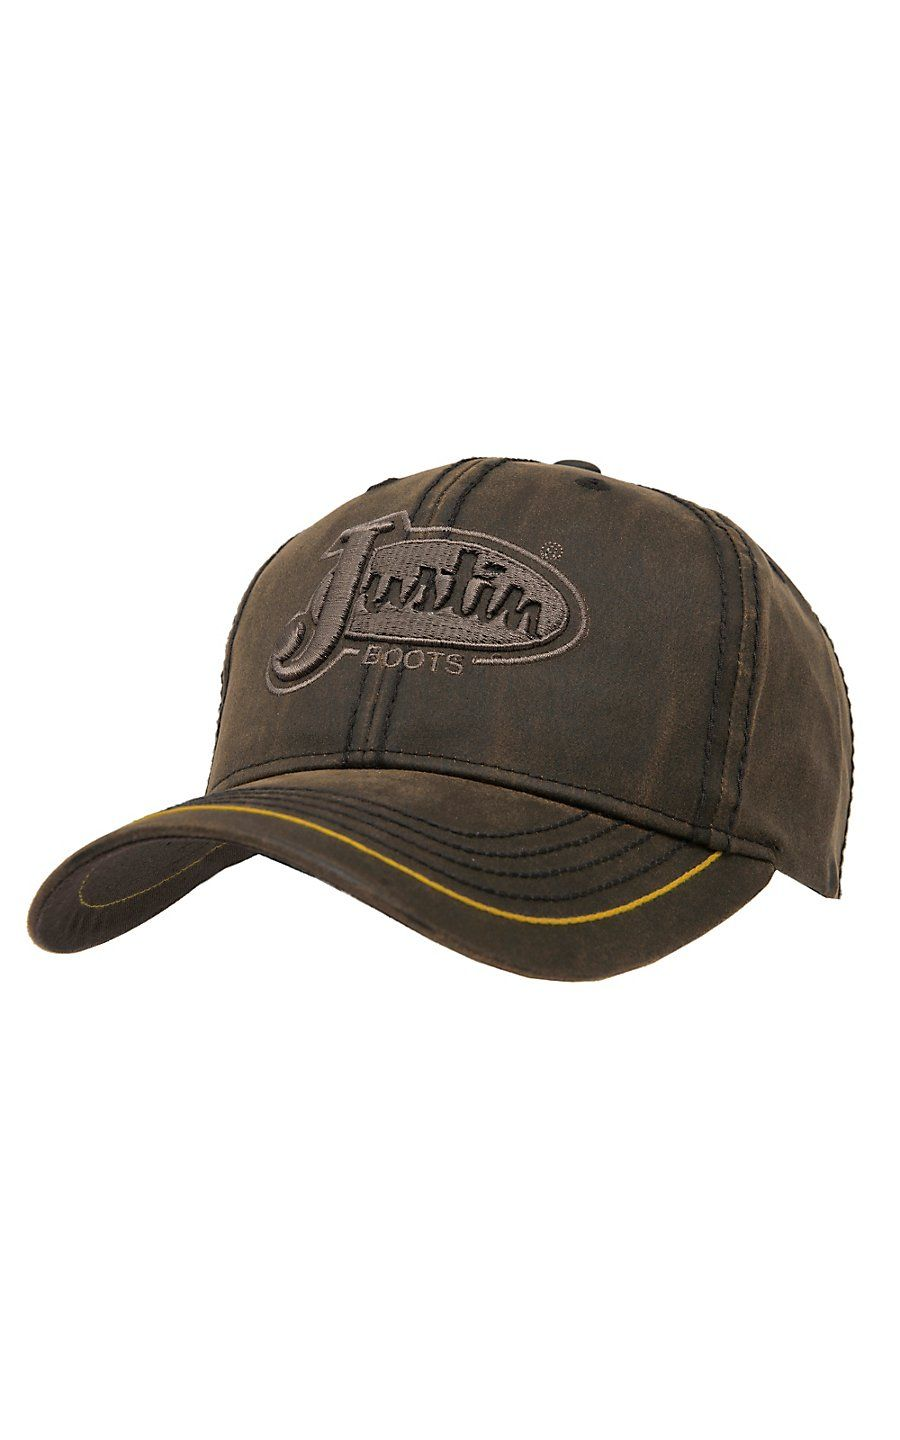 Justin Boots® Brown Oilcloth with Embroidered Logo Cap 9ab4609c8c65